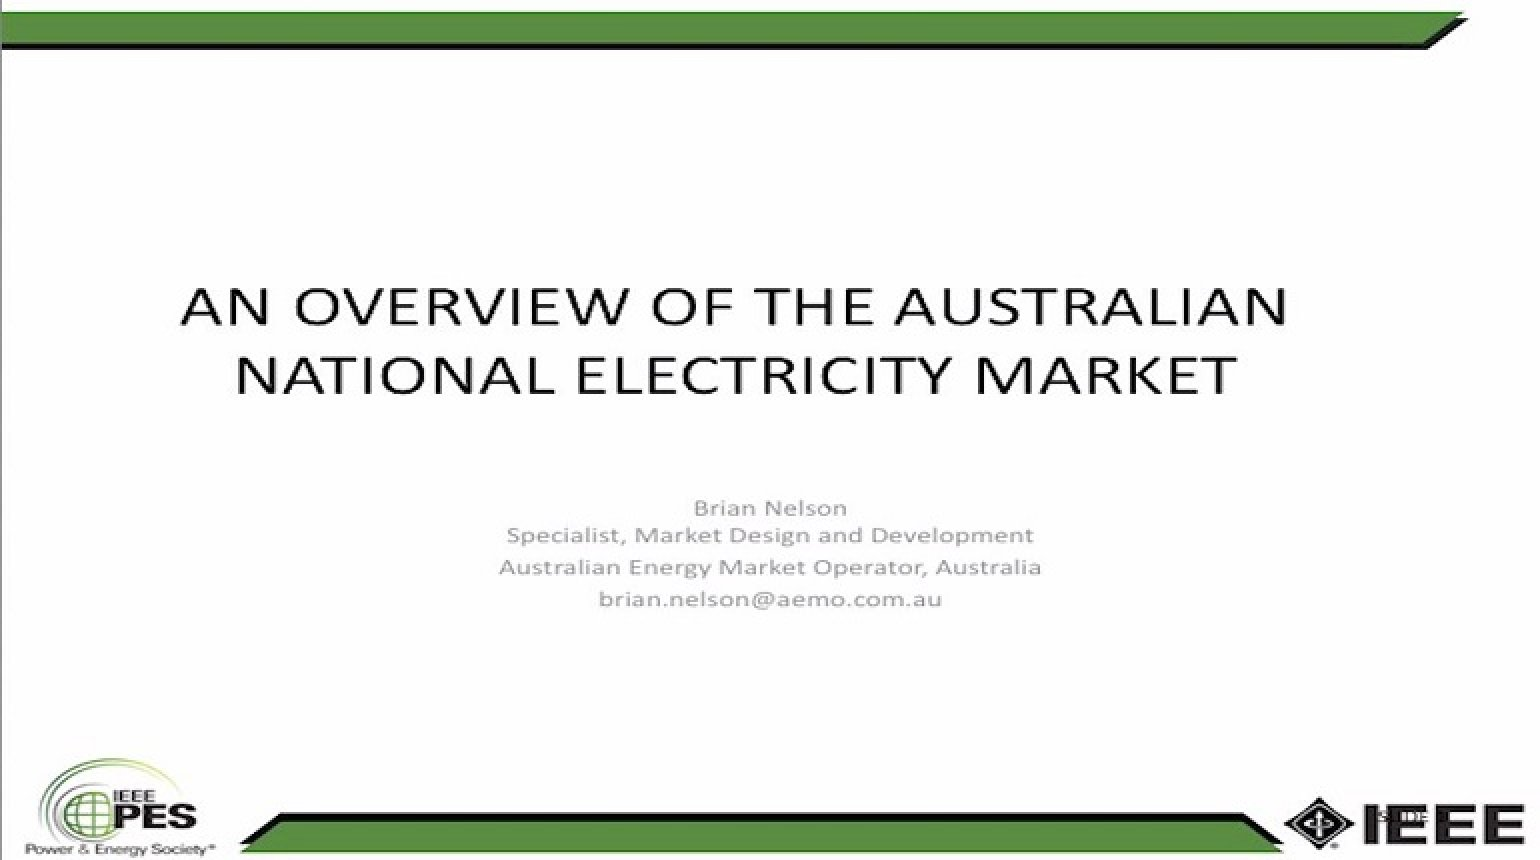 National Electricity Market (NEM) of Australia: Operation and Future Challenges